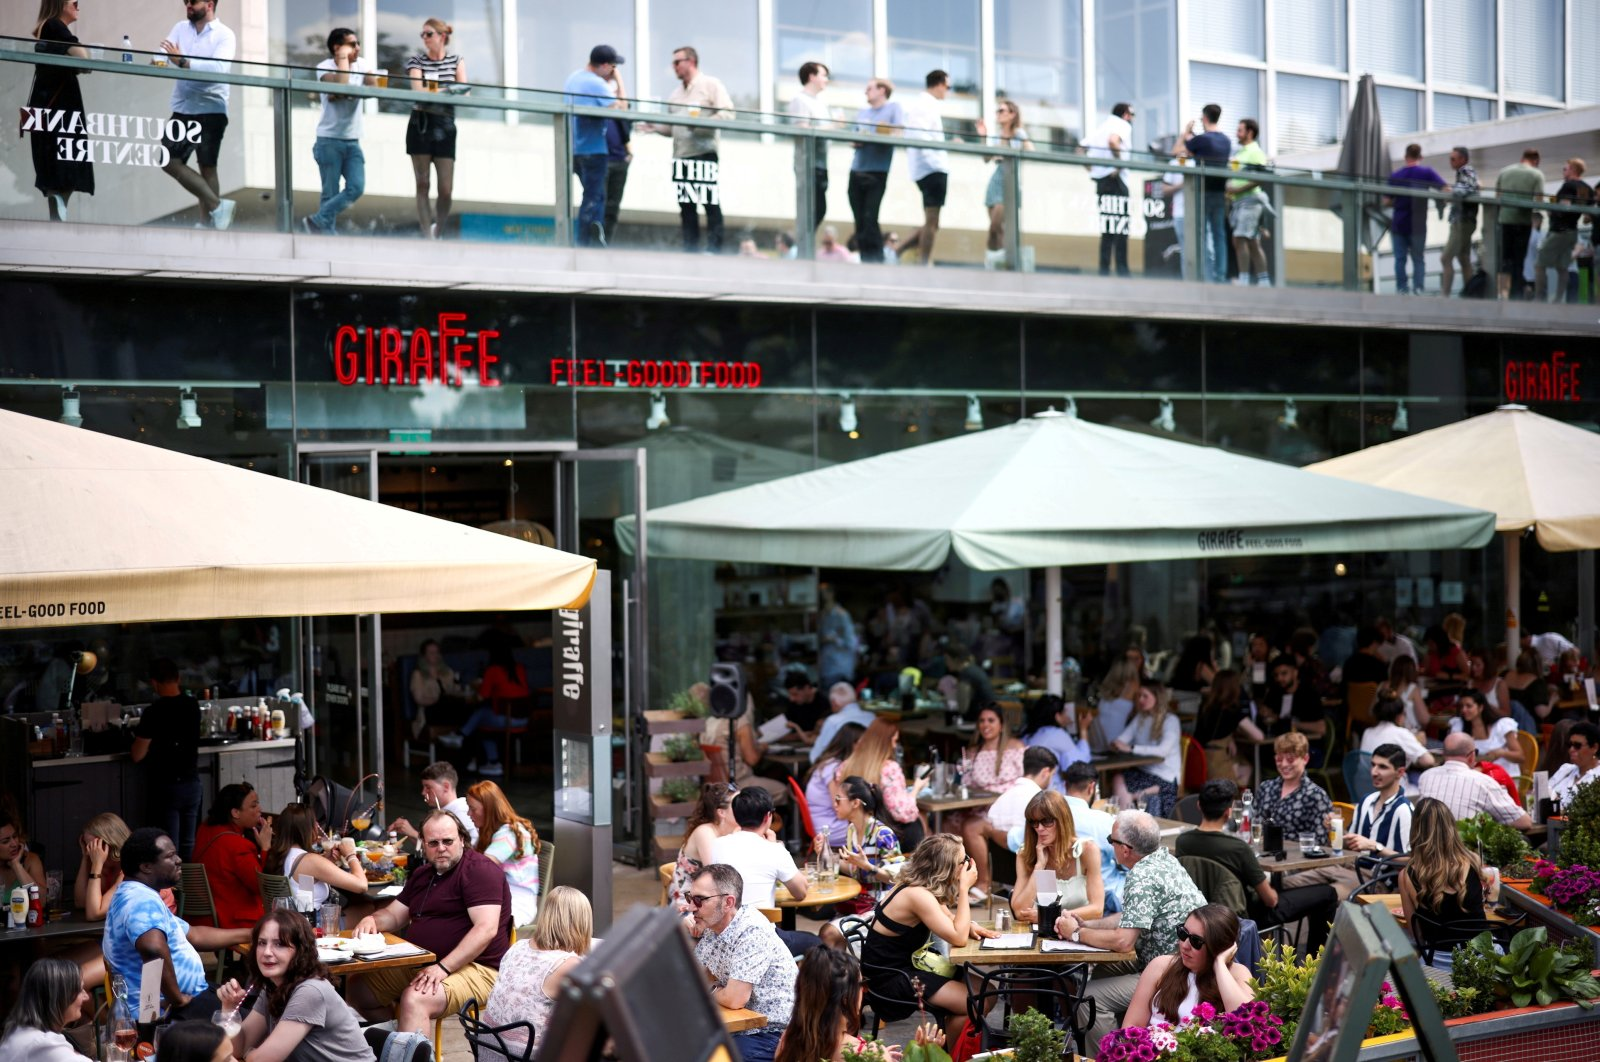 People sit at an outdoor restaurant on the South Bank during sunny weather in London, U.K., June 5, 2021. (Reuters Photo)